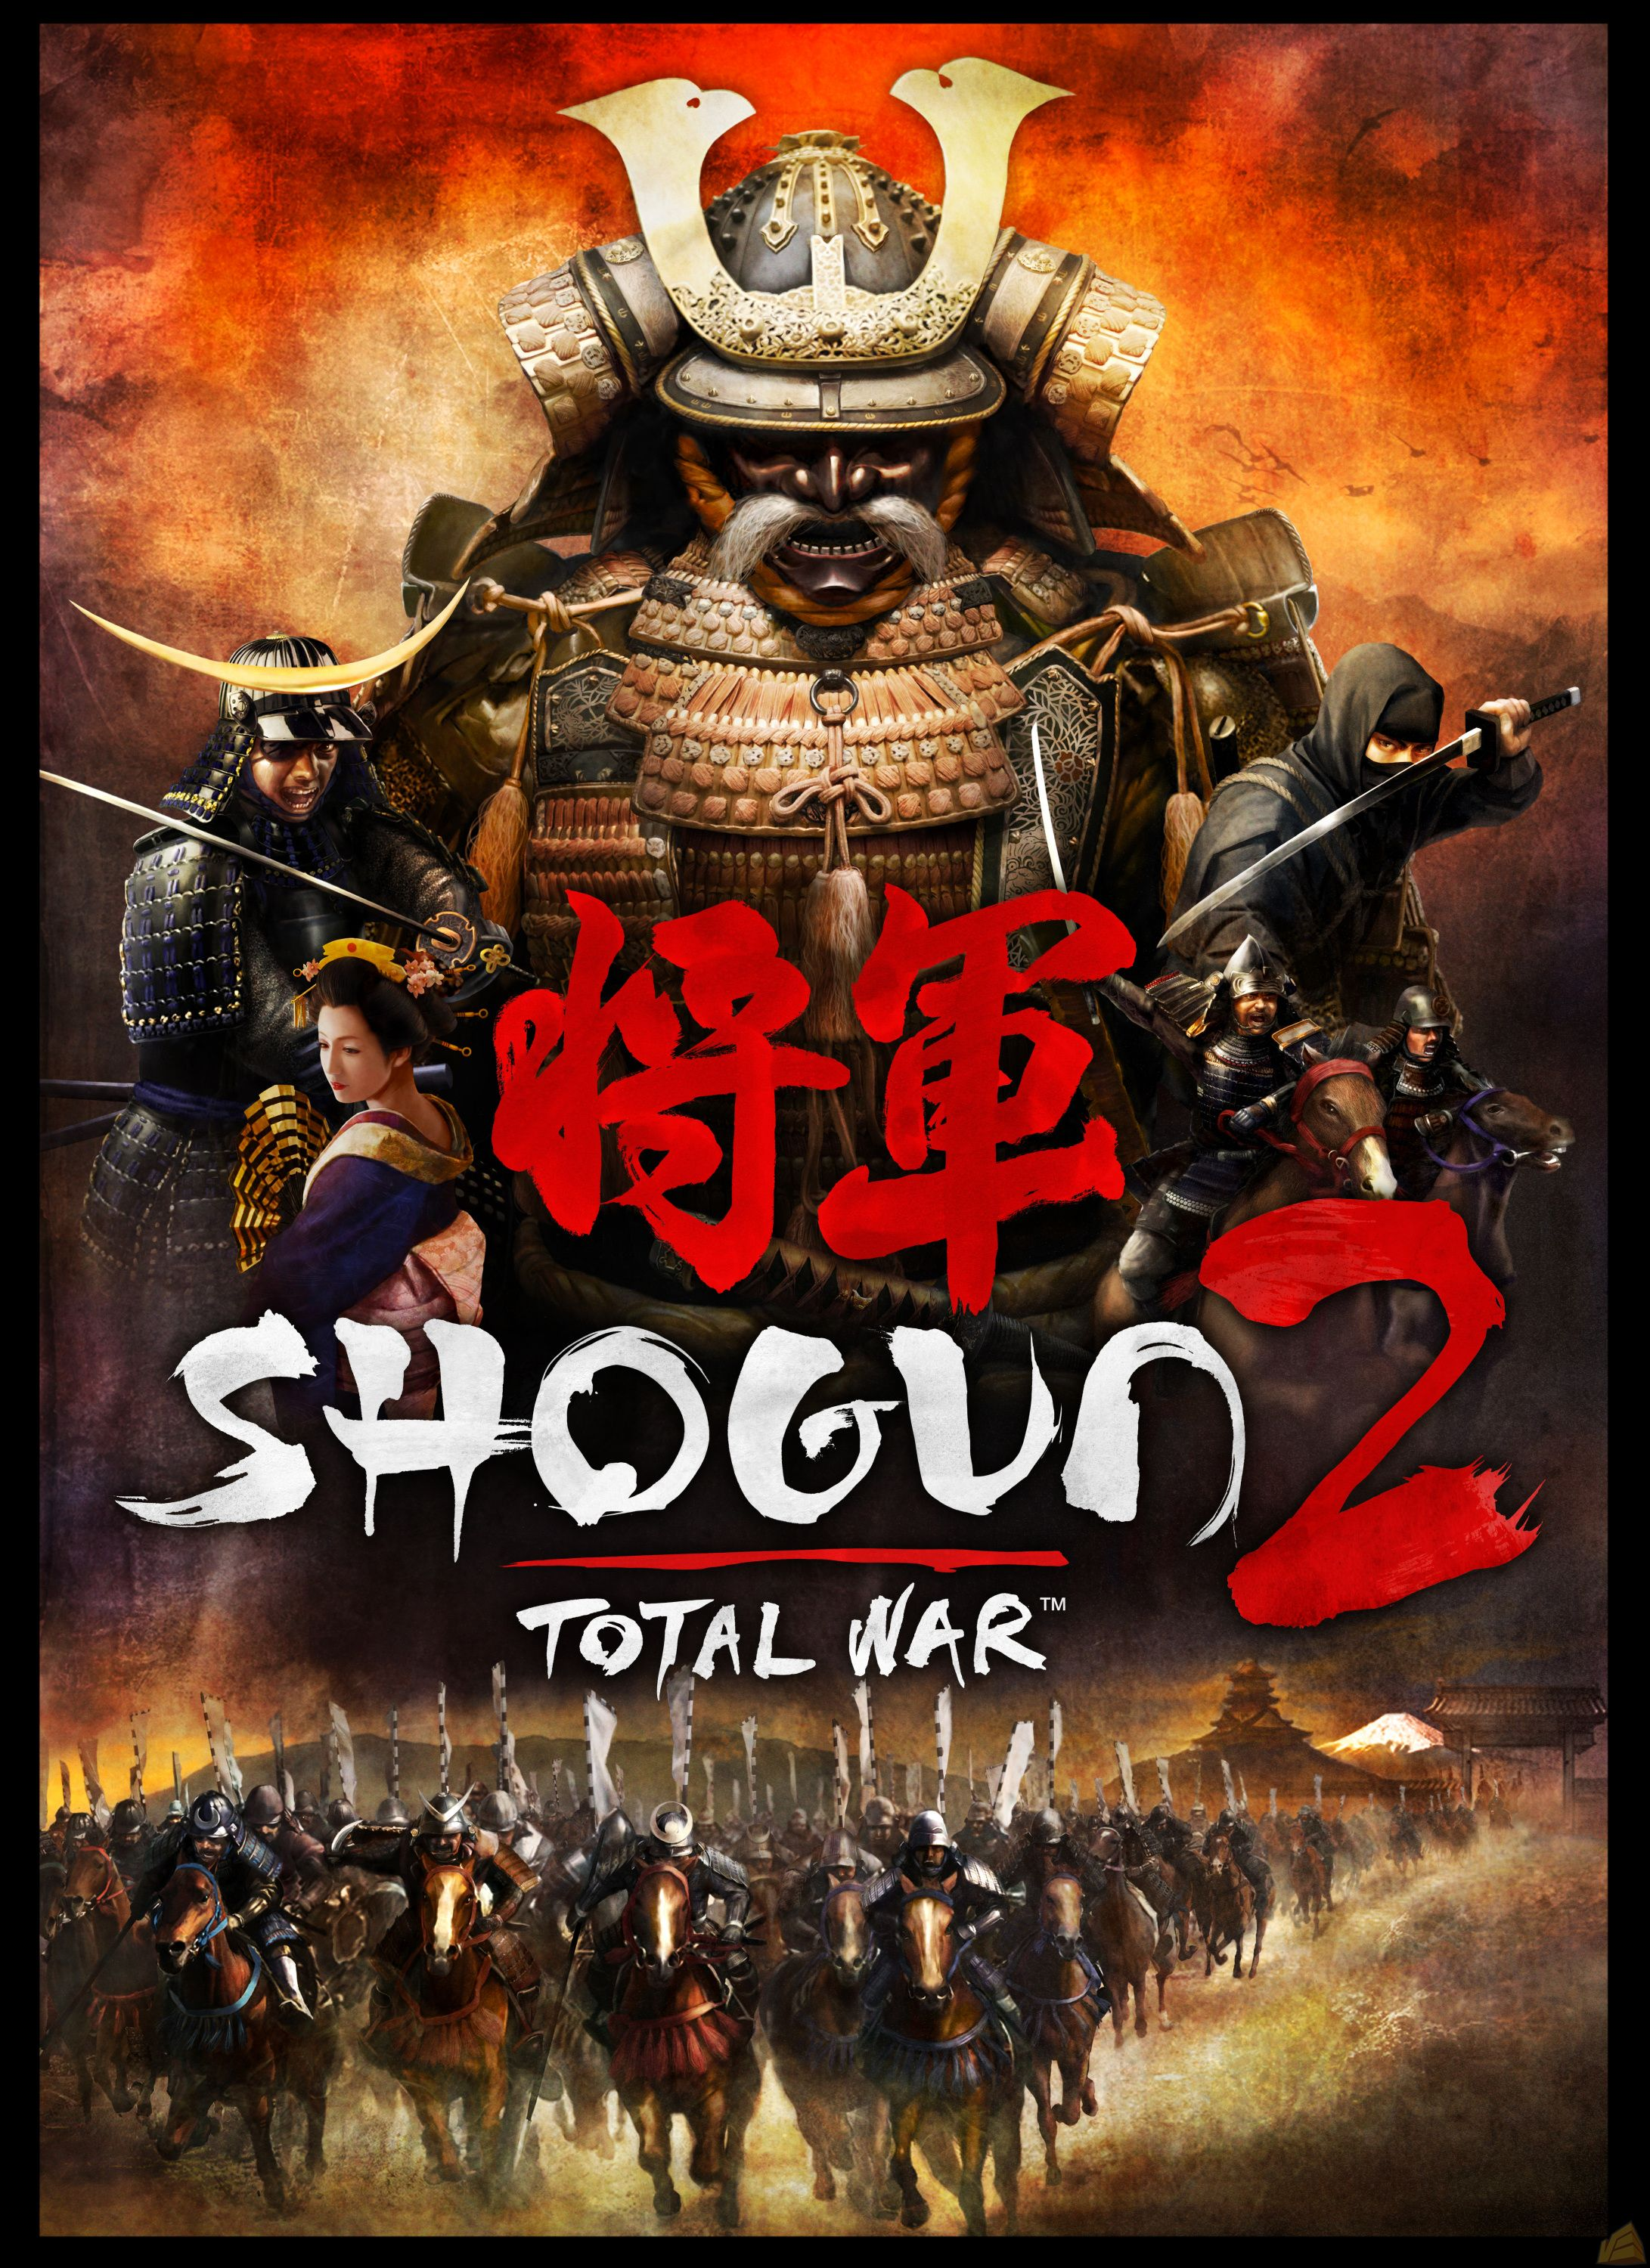 Total War Shogun 2 Fall Of The Samurai Wallpaper Hd Total War Shogun 2 Royal Military Academy